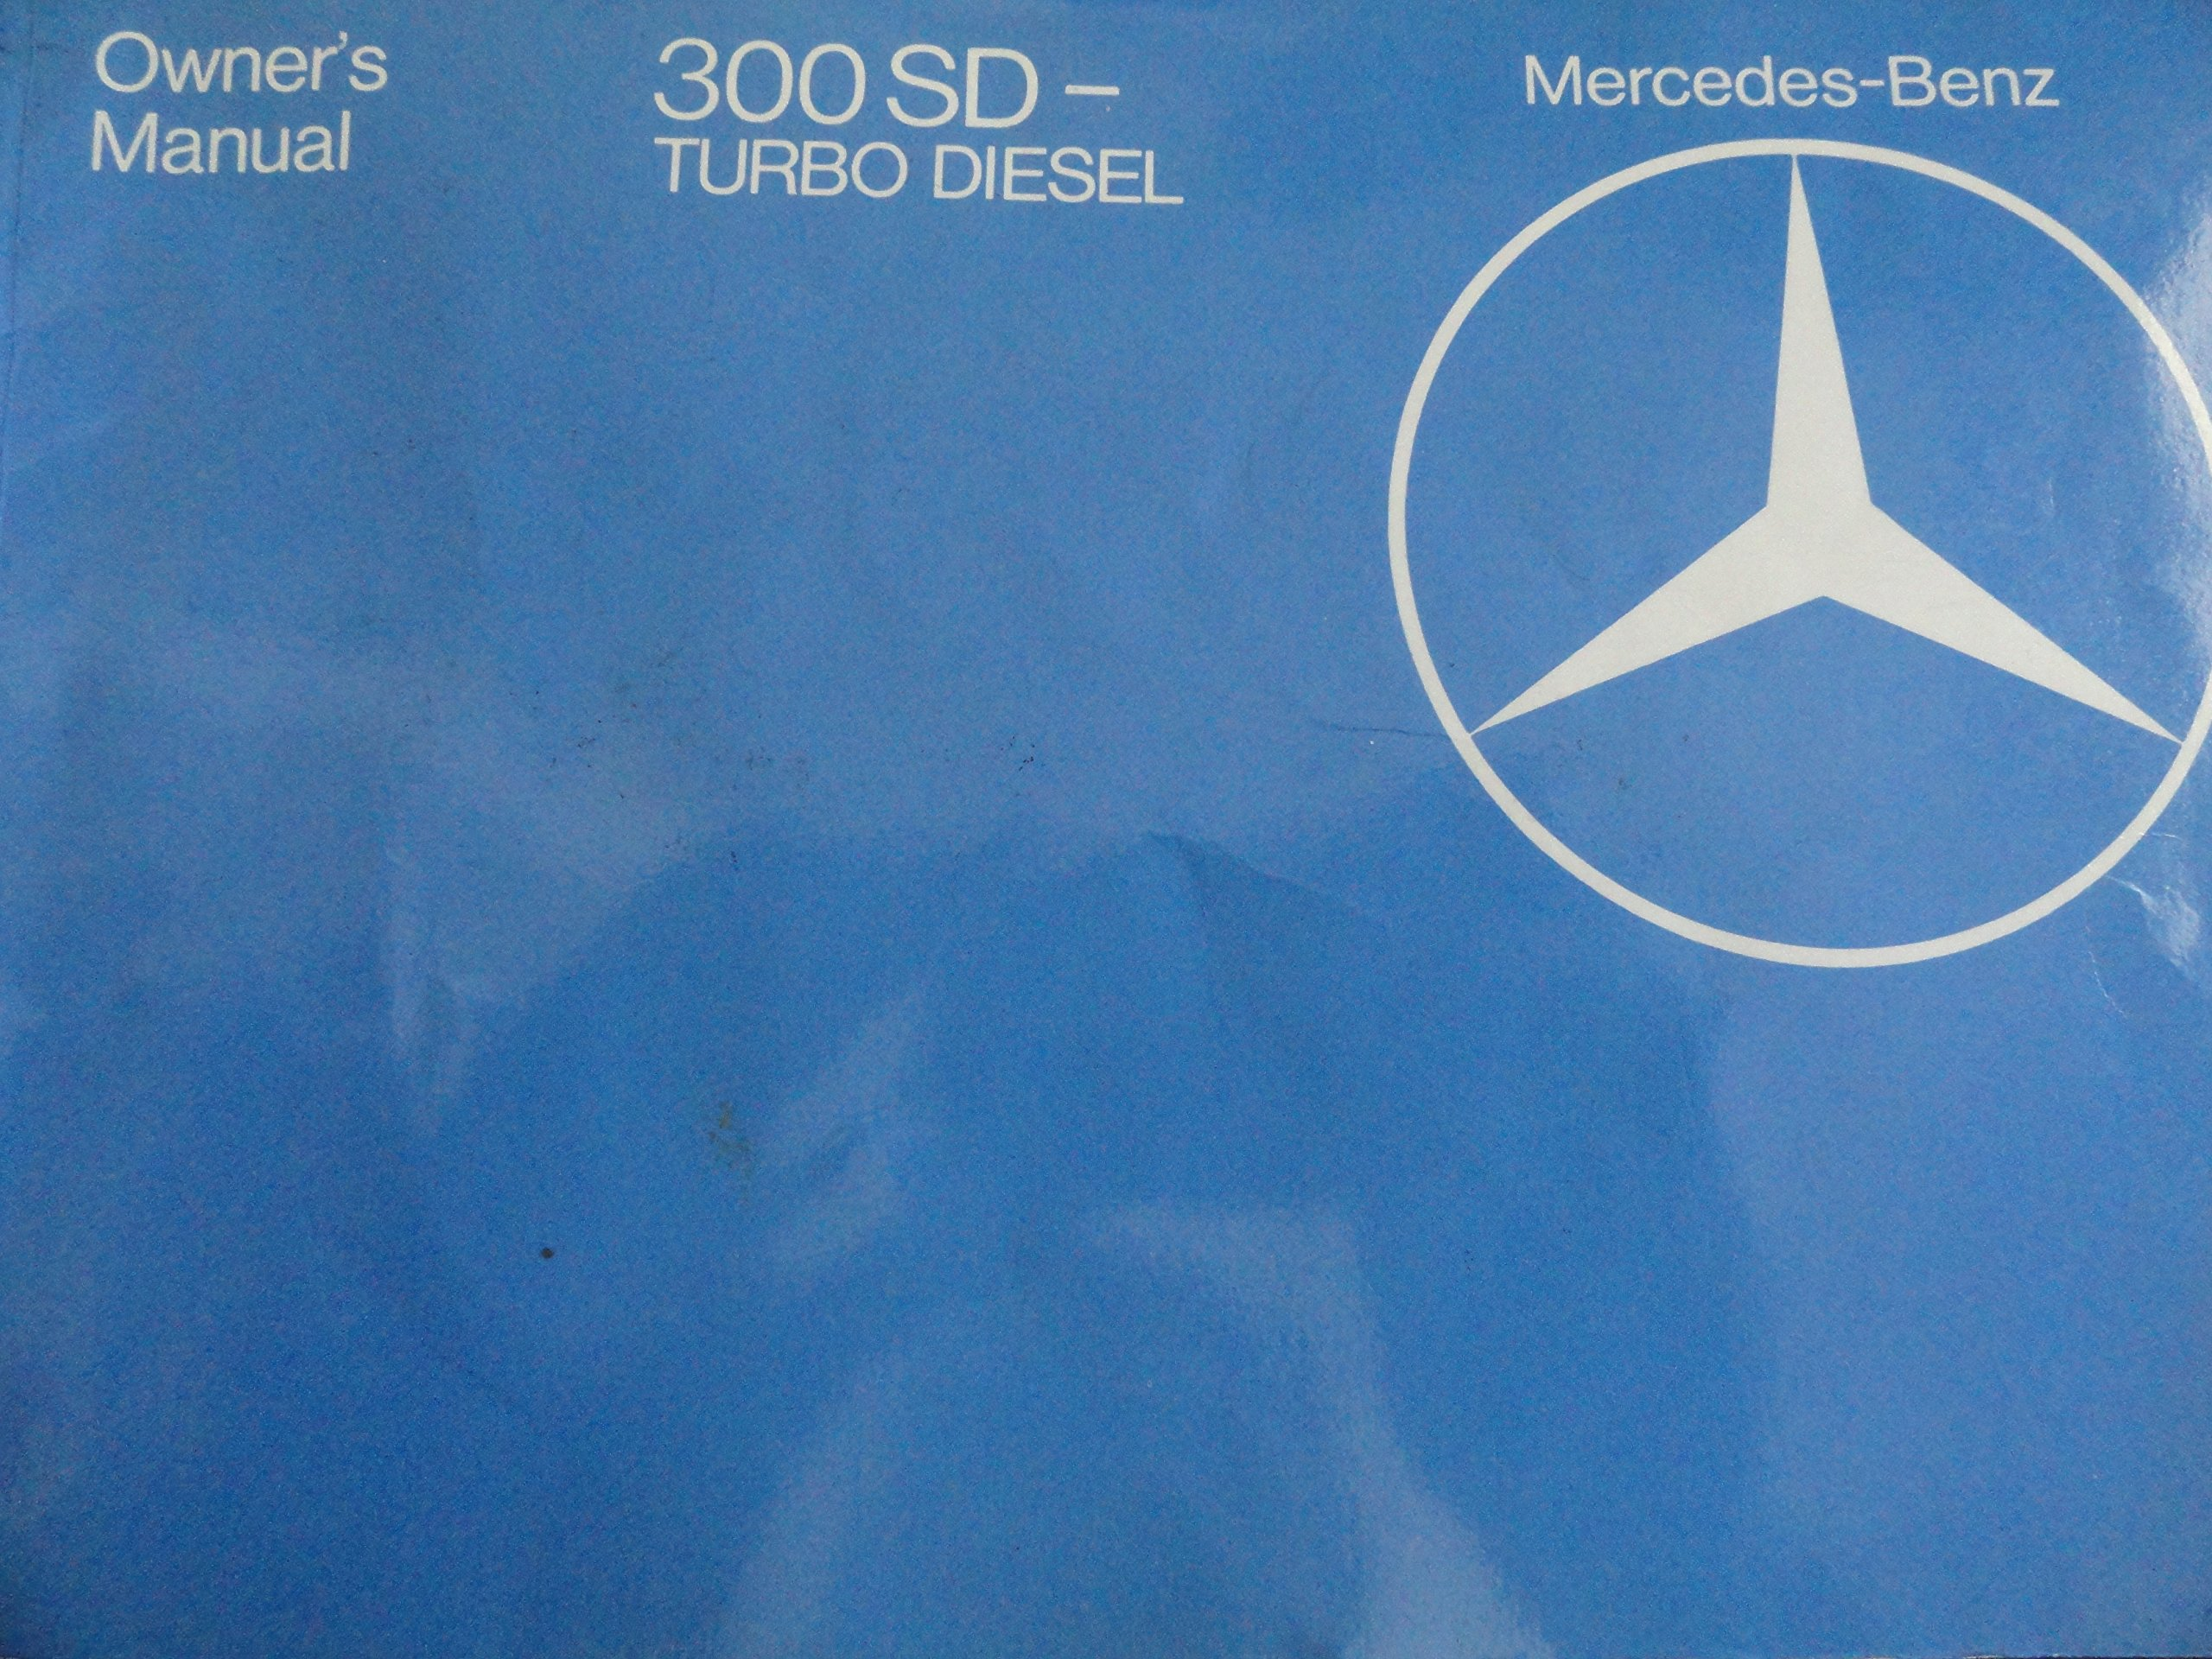 1983 Mercedes Benz 300SD Owners Manual 300 SD Turbo Diesel: Mercedes: Amazon.com: Books